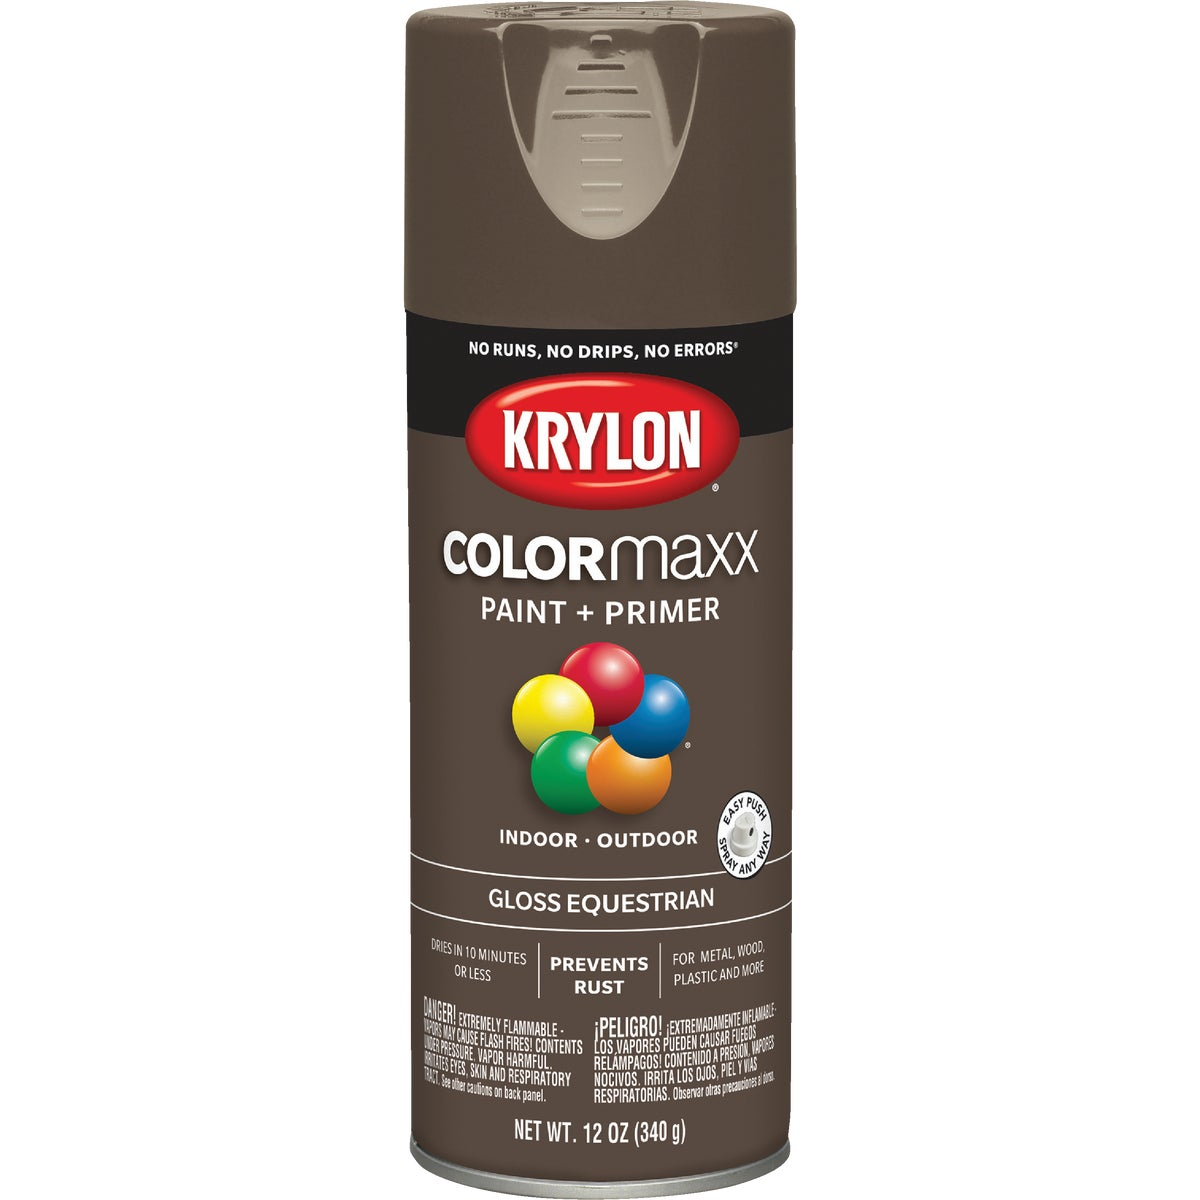 GLS EQUESTRN SPRAY PAINT - 53553 by Krylon/consumer Div